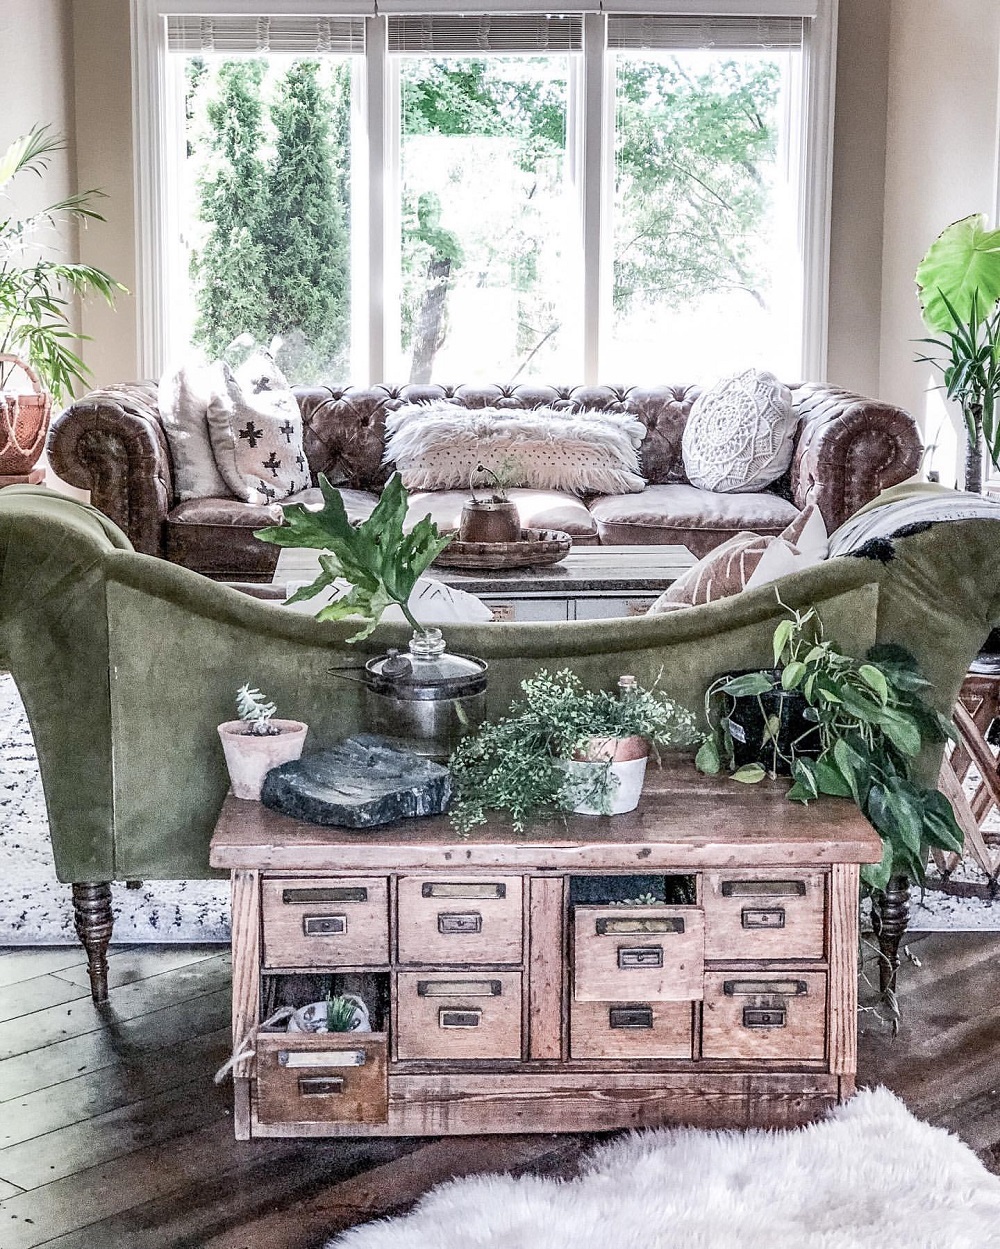 t3-62 How to use a vintage pharmacy cabinet in your home decor